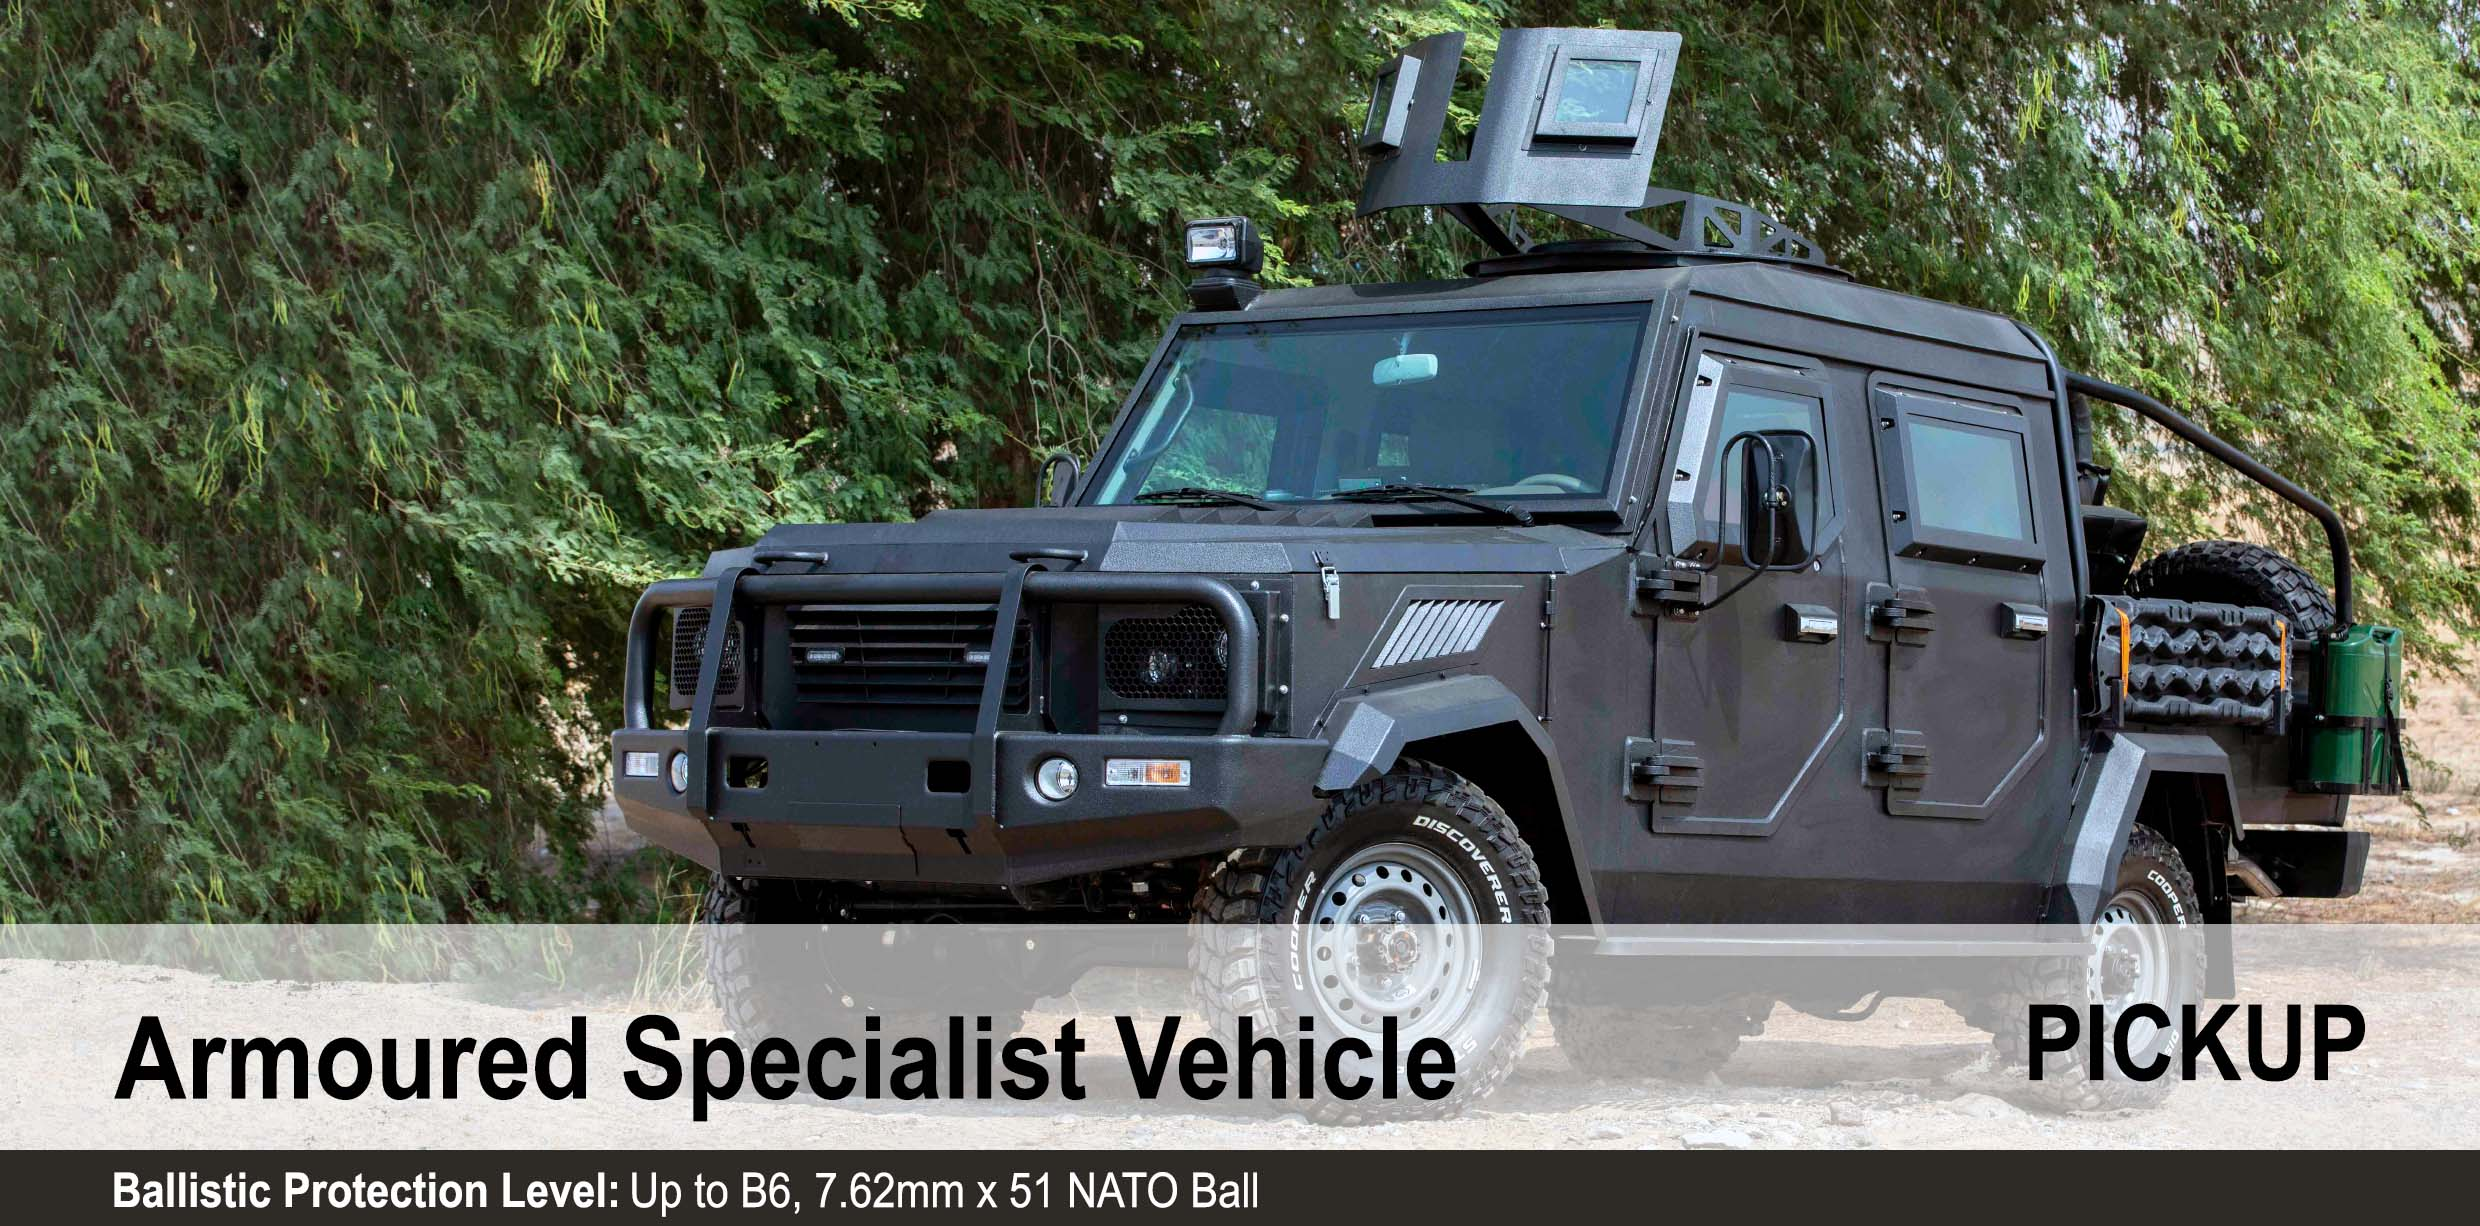 Mahindra Armored Specialist Vehicle, B6 Armoured Pickup truck